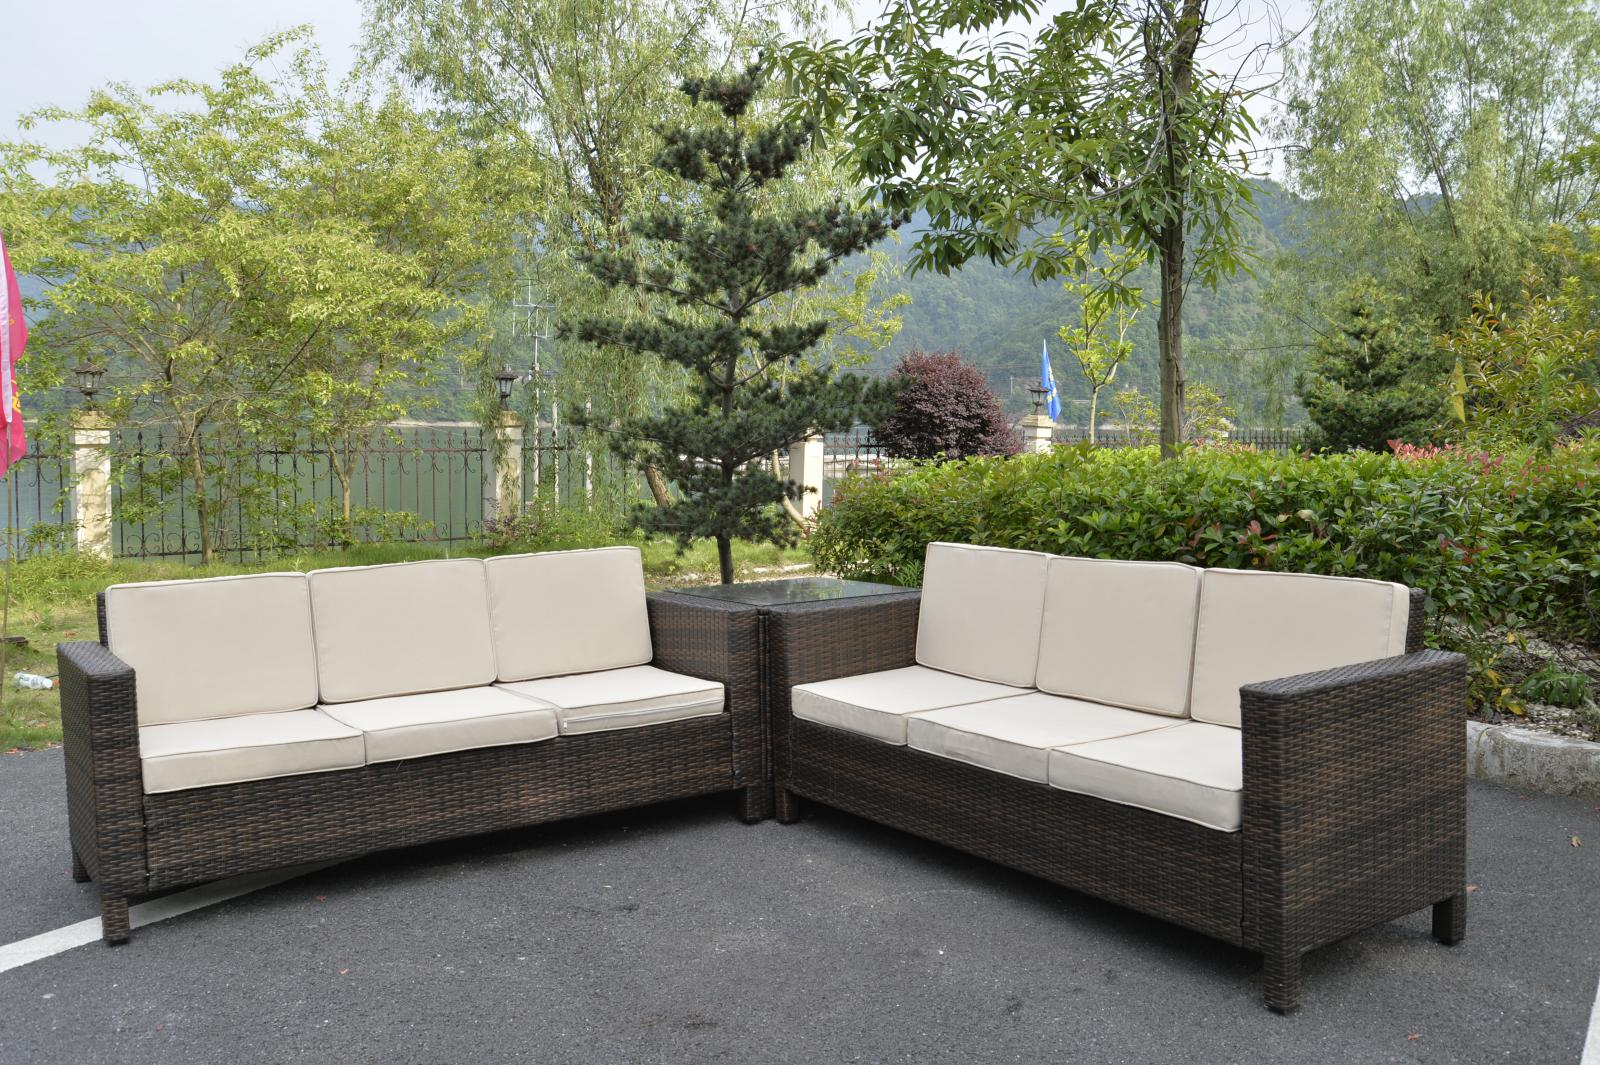 Rattan Garden Sofa Set Ebay Rattan Garden Furniture Set Sofa Conservatory Outdoor